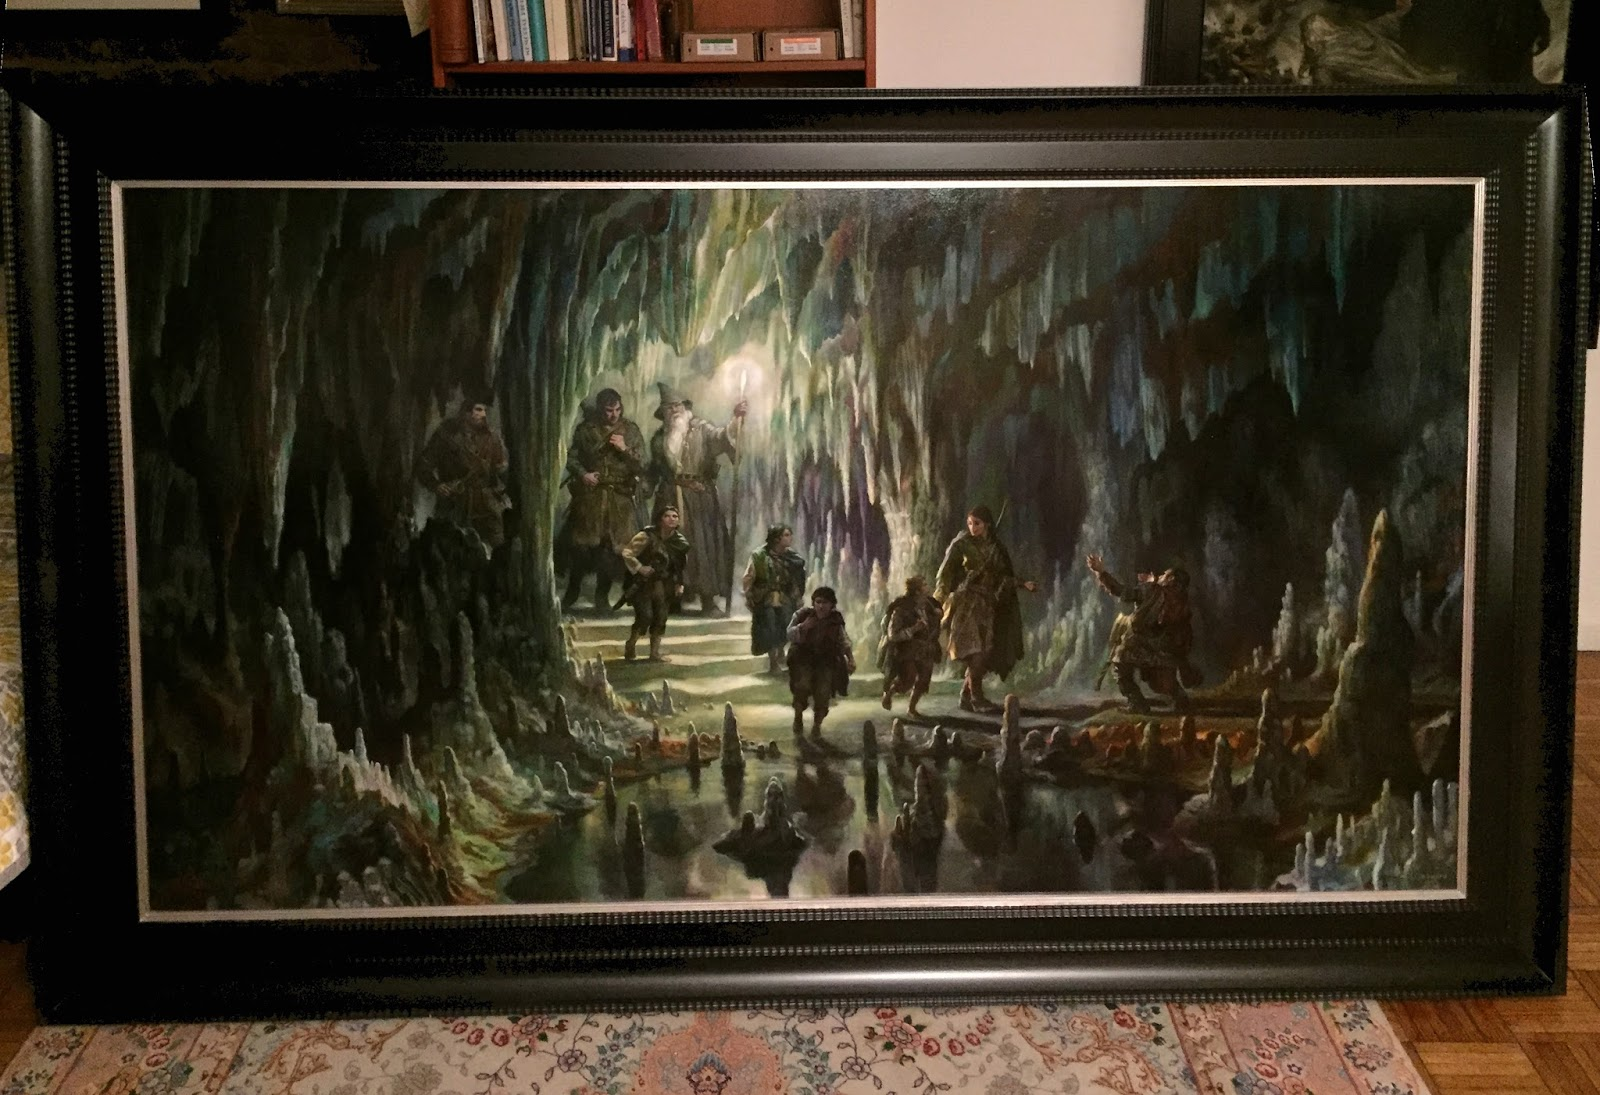 Epic painting – The Fellowship of the RIng in Moria